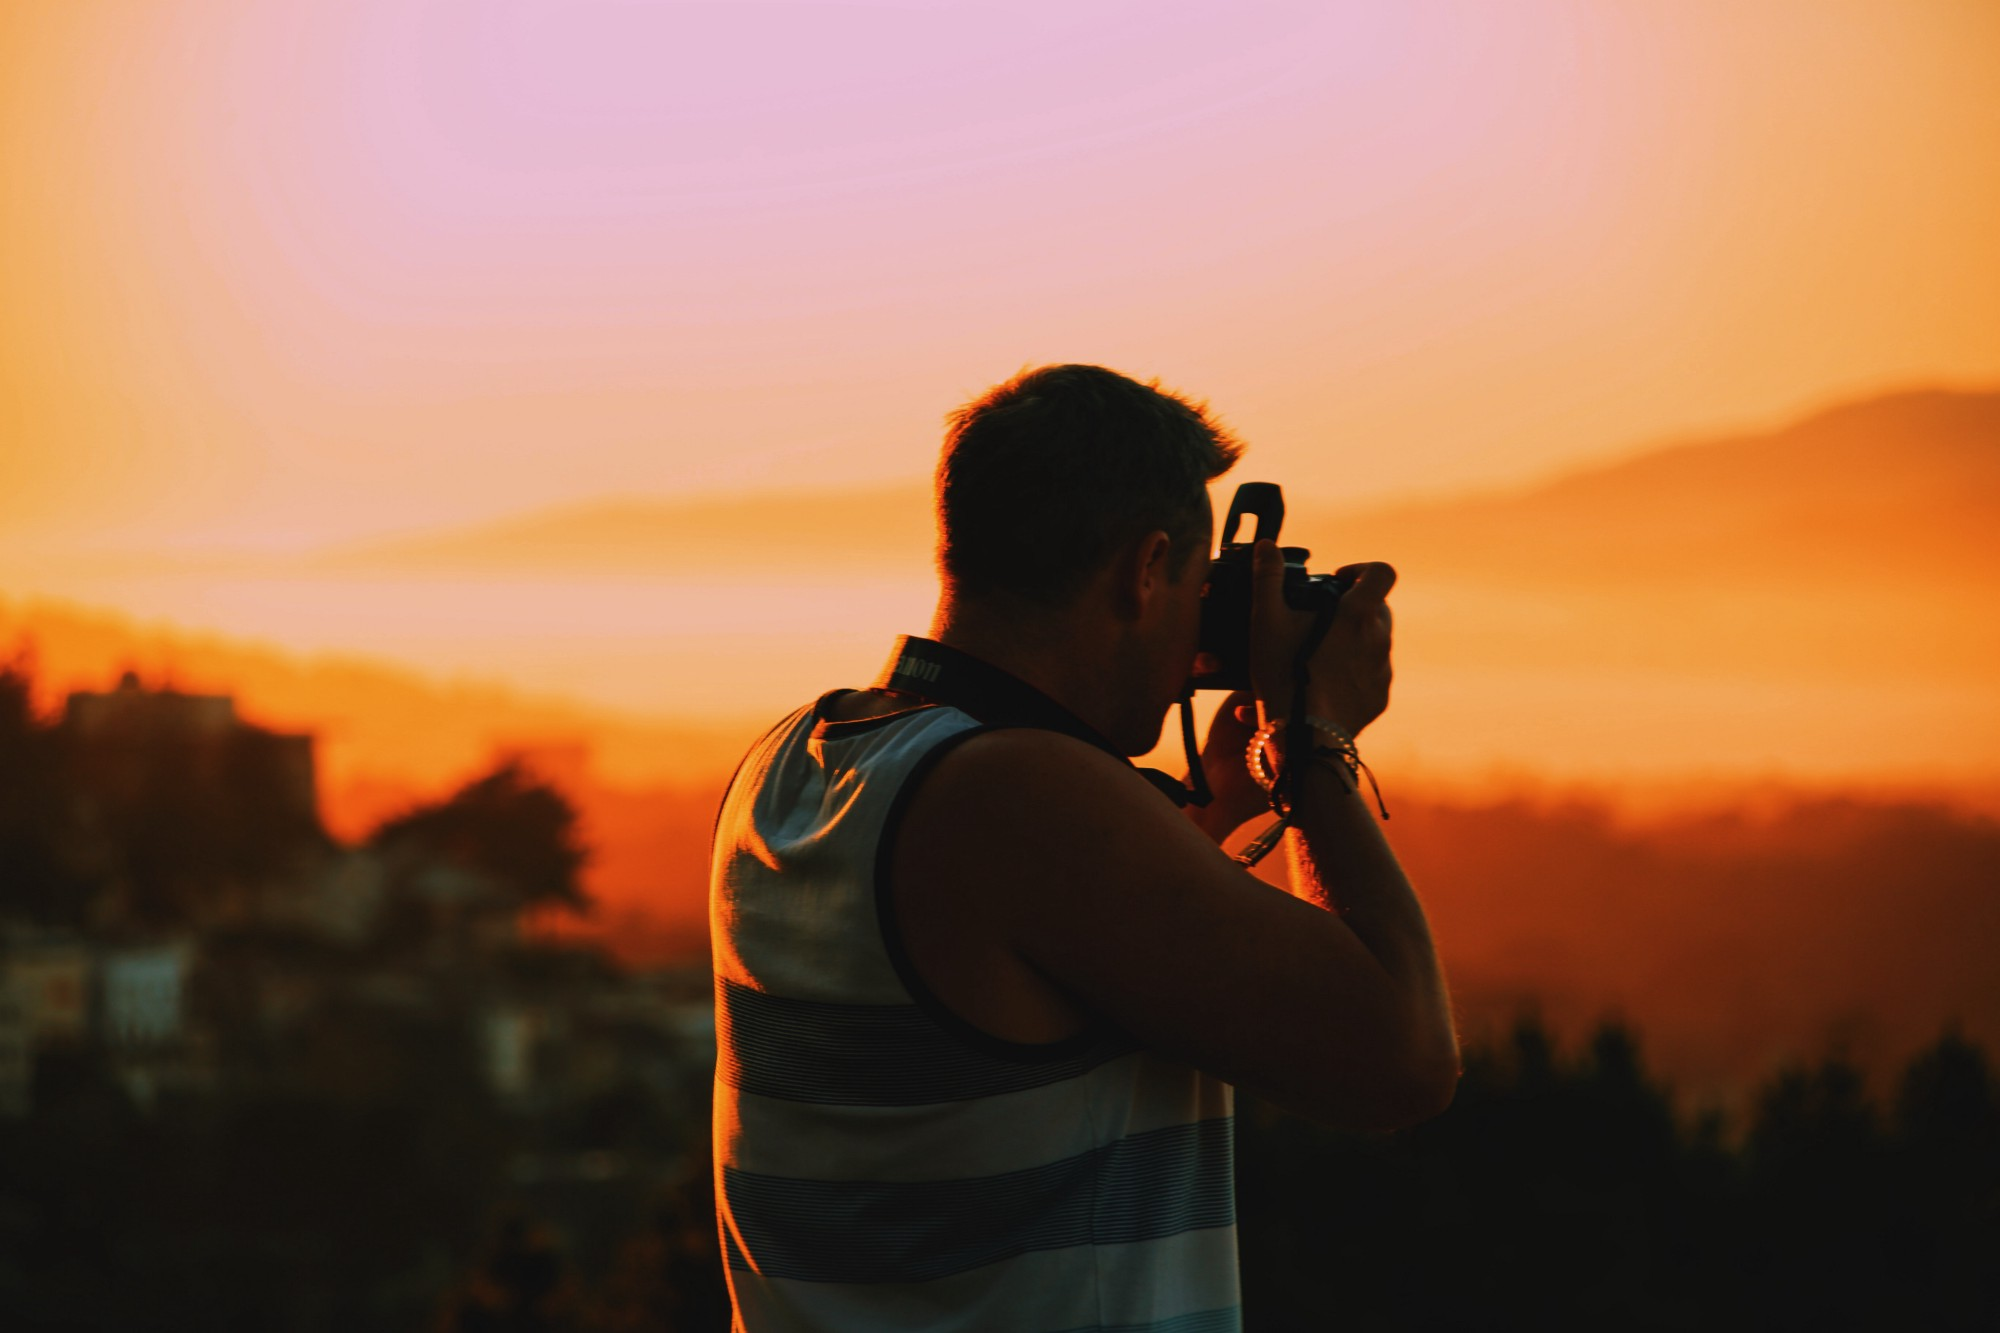 A photographer making an image of a sunset.